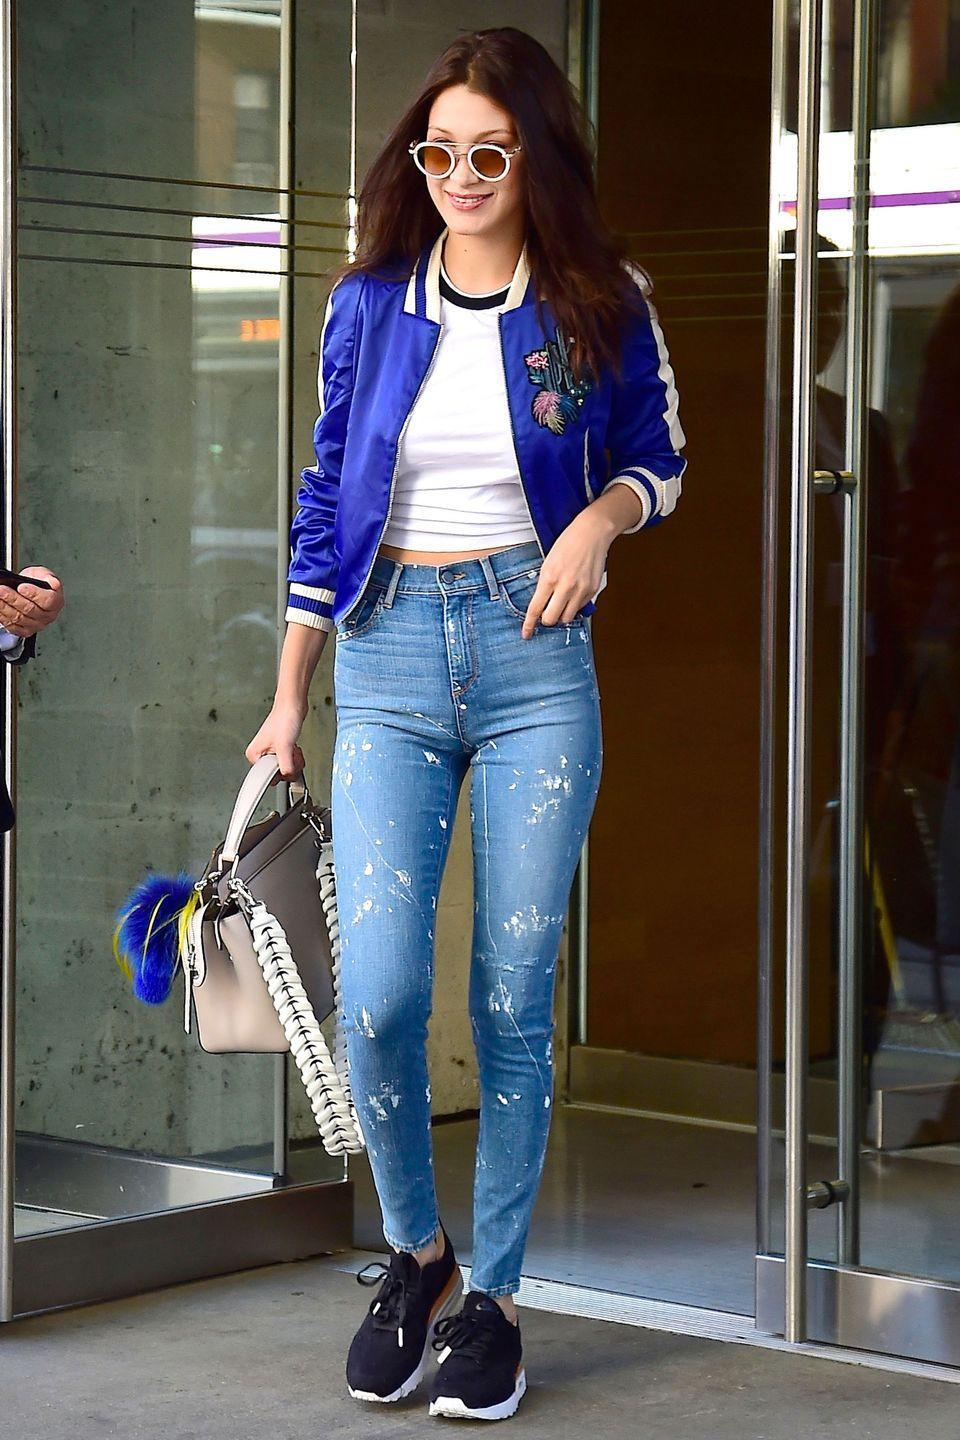 <p>In silk bomber, white tee, sneakers and jeans in Soho, New York City.</p>